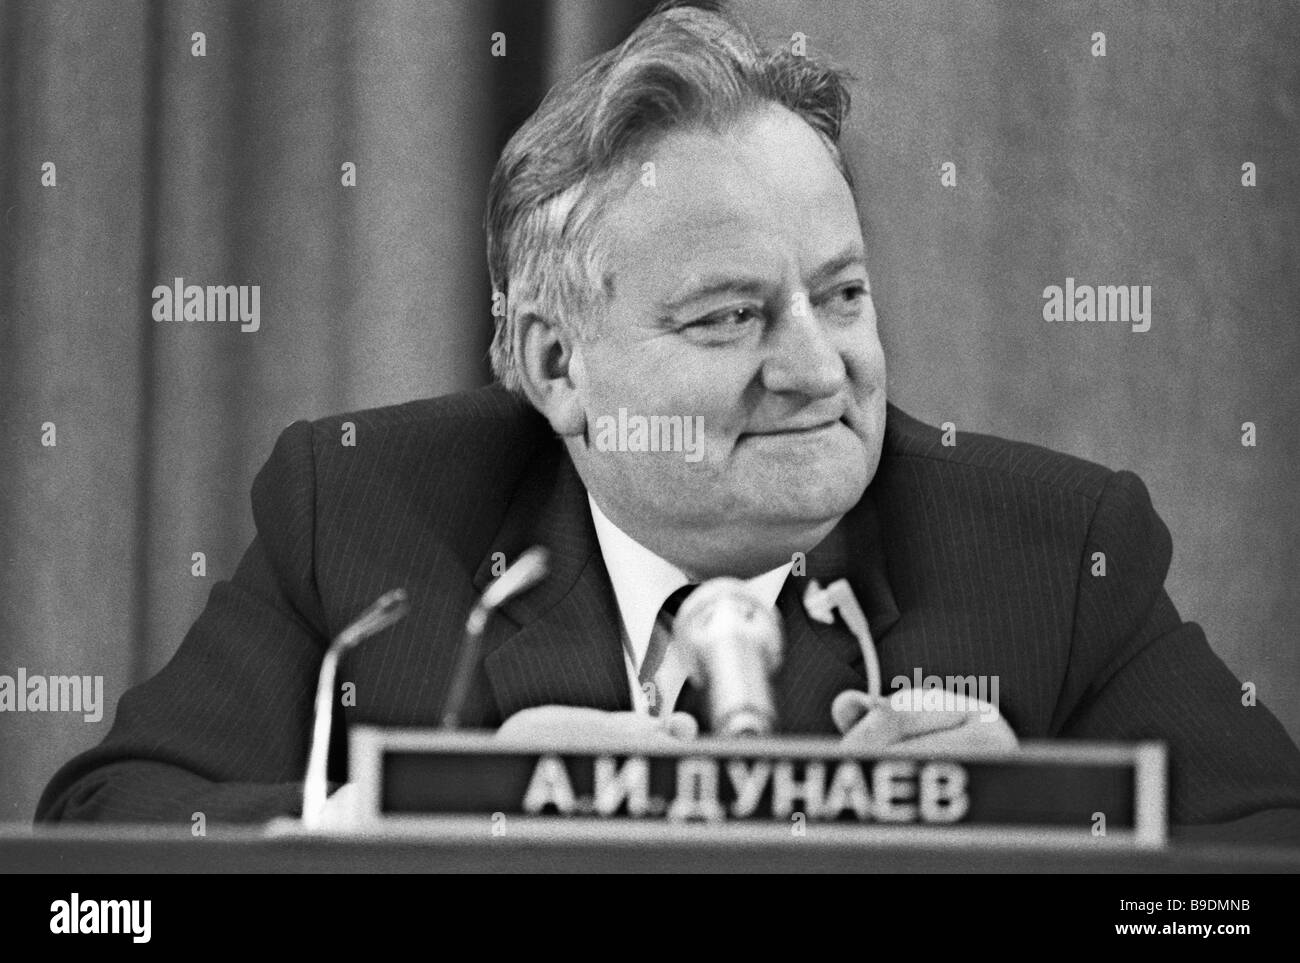 Space Agency Black and White Stock Photos & Images - Alamy